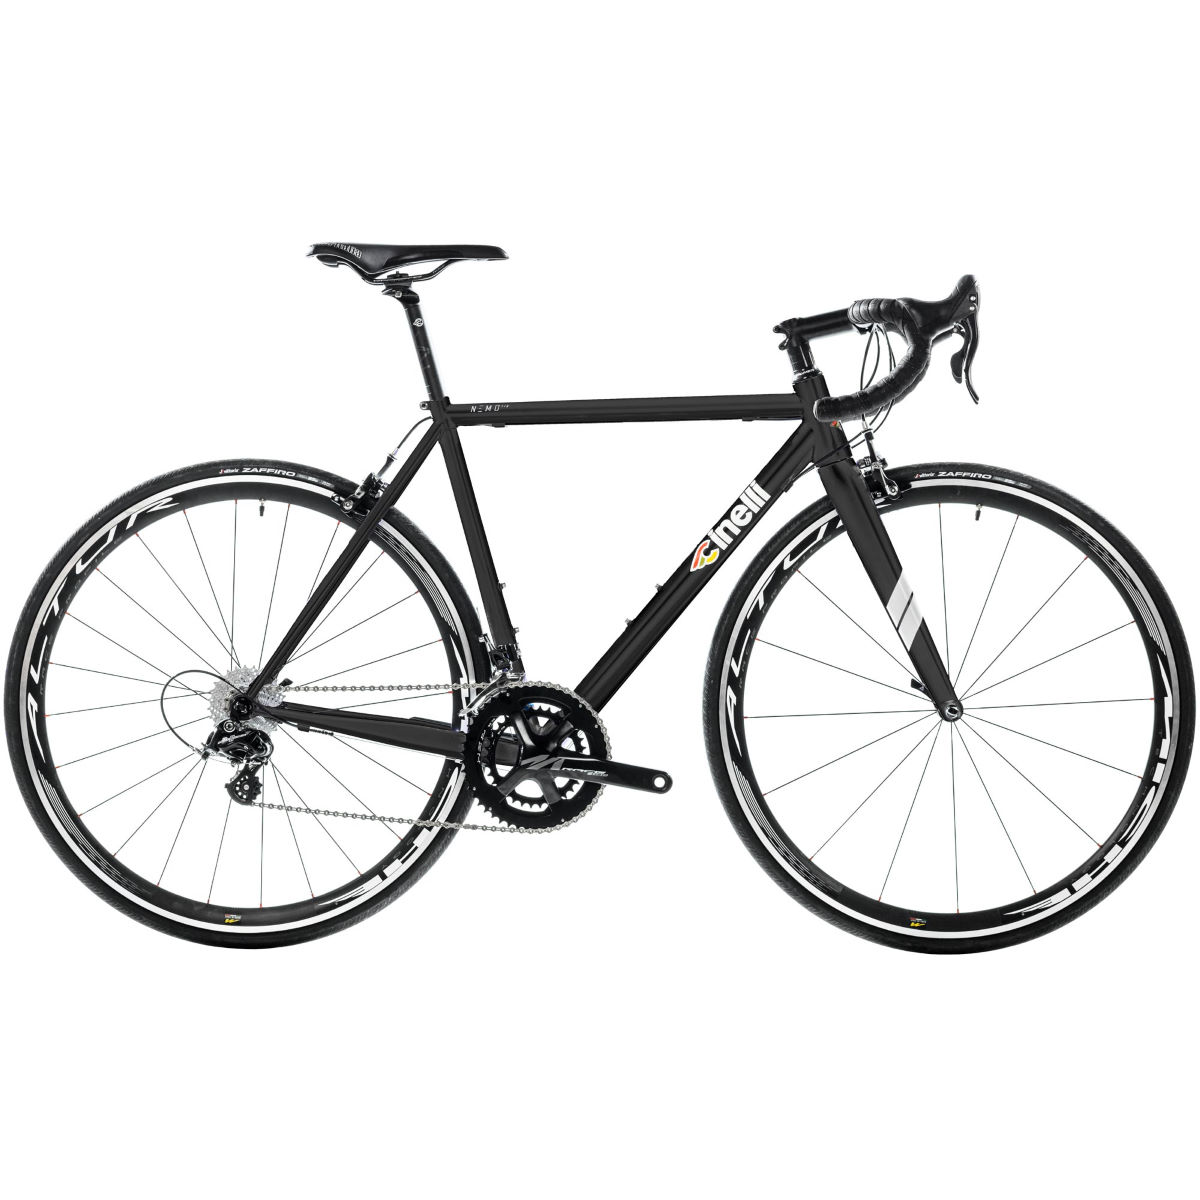 Vélo de route Cinelli Nemo Tig (Potenza, 2017) - XL Stock Bike Noir